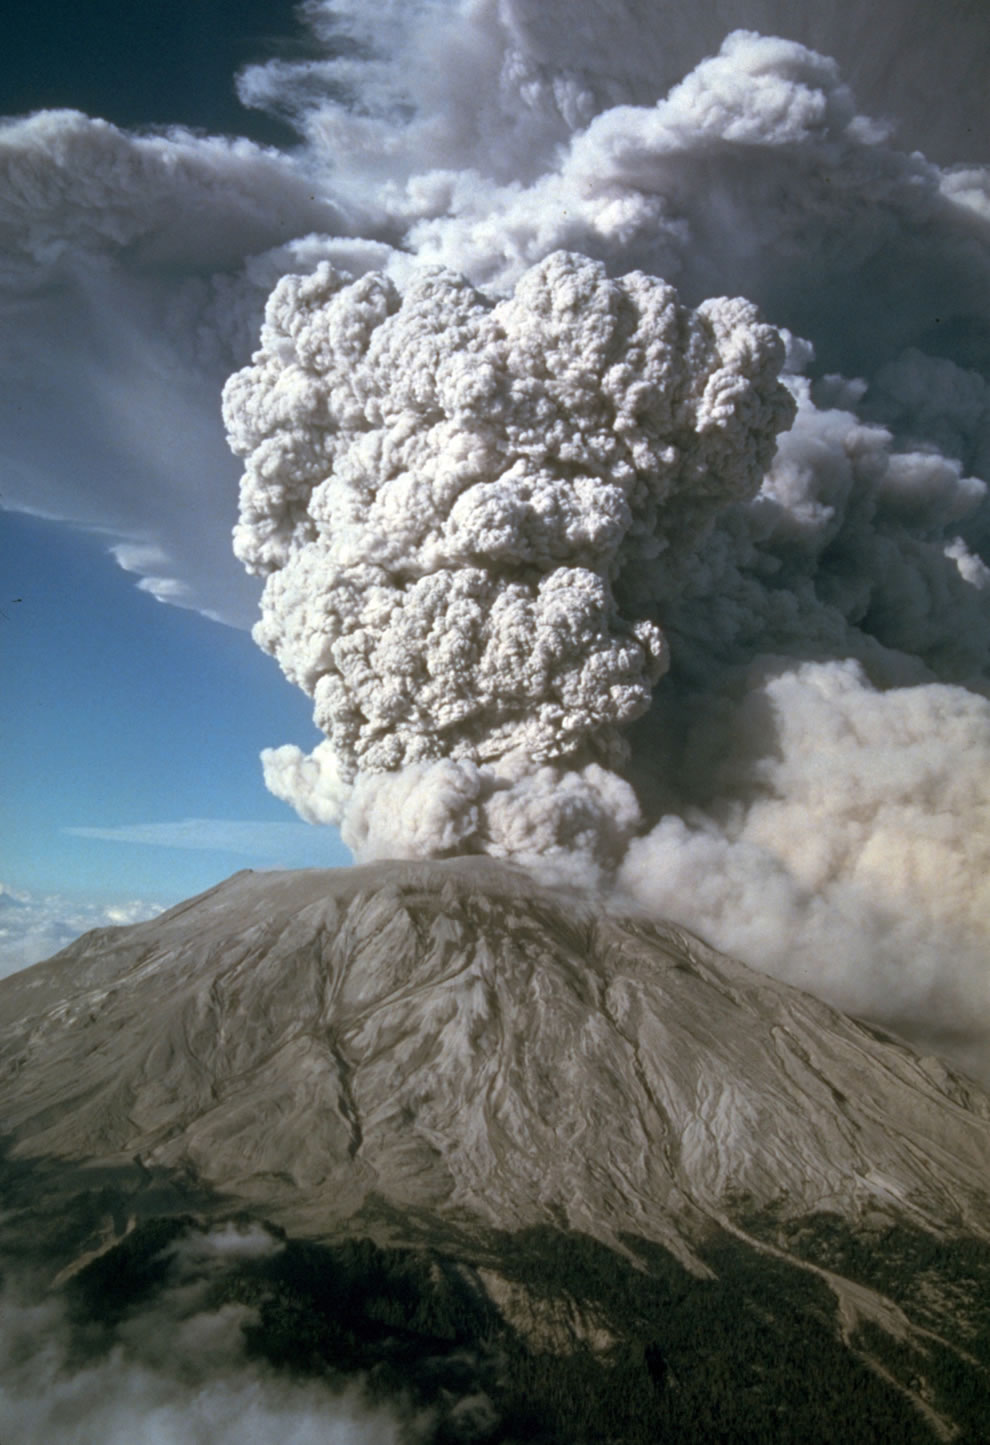 After May 18th five more explosive eruptions of Mount St. Helens occurred in 1980, including this spectacular event of July 22nd